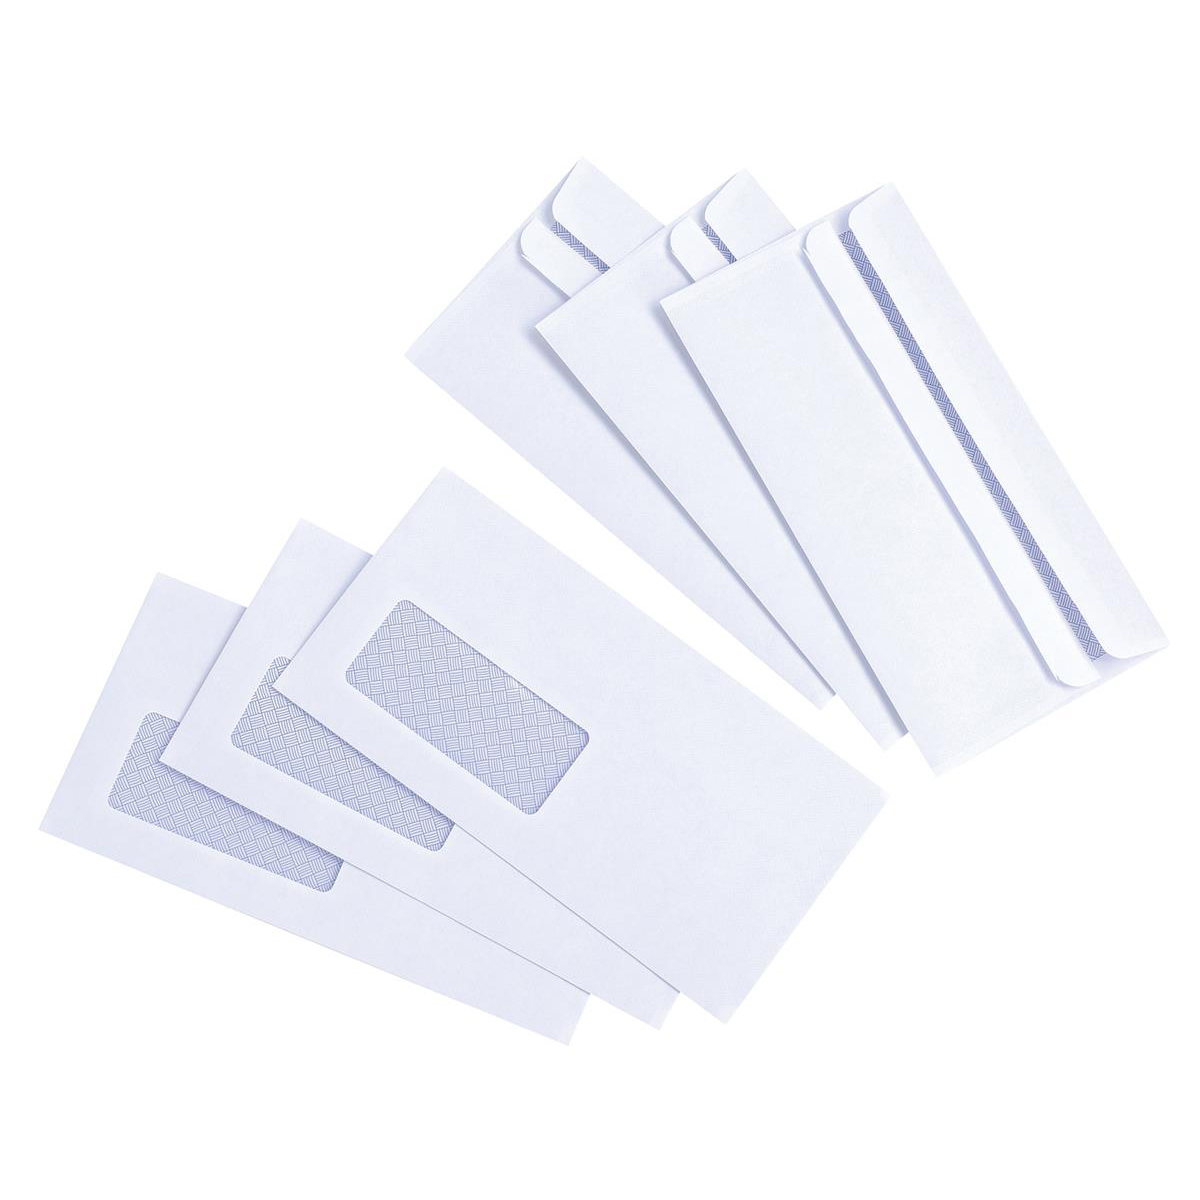 DL 5 Star Value Envelopes Wallet Press Seal Window 80gsm DL 110x220mm White Pack 1000